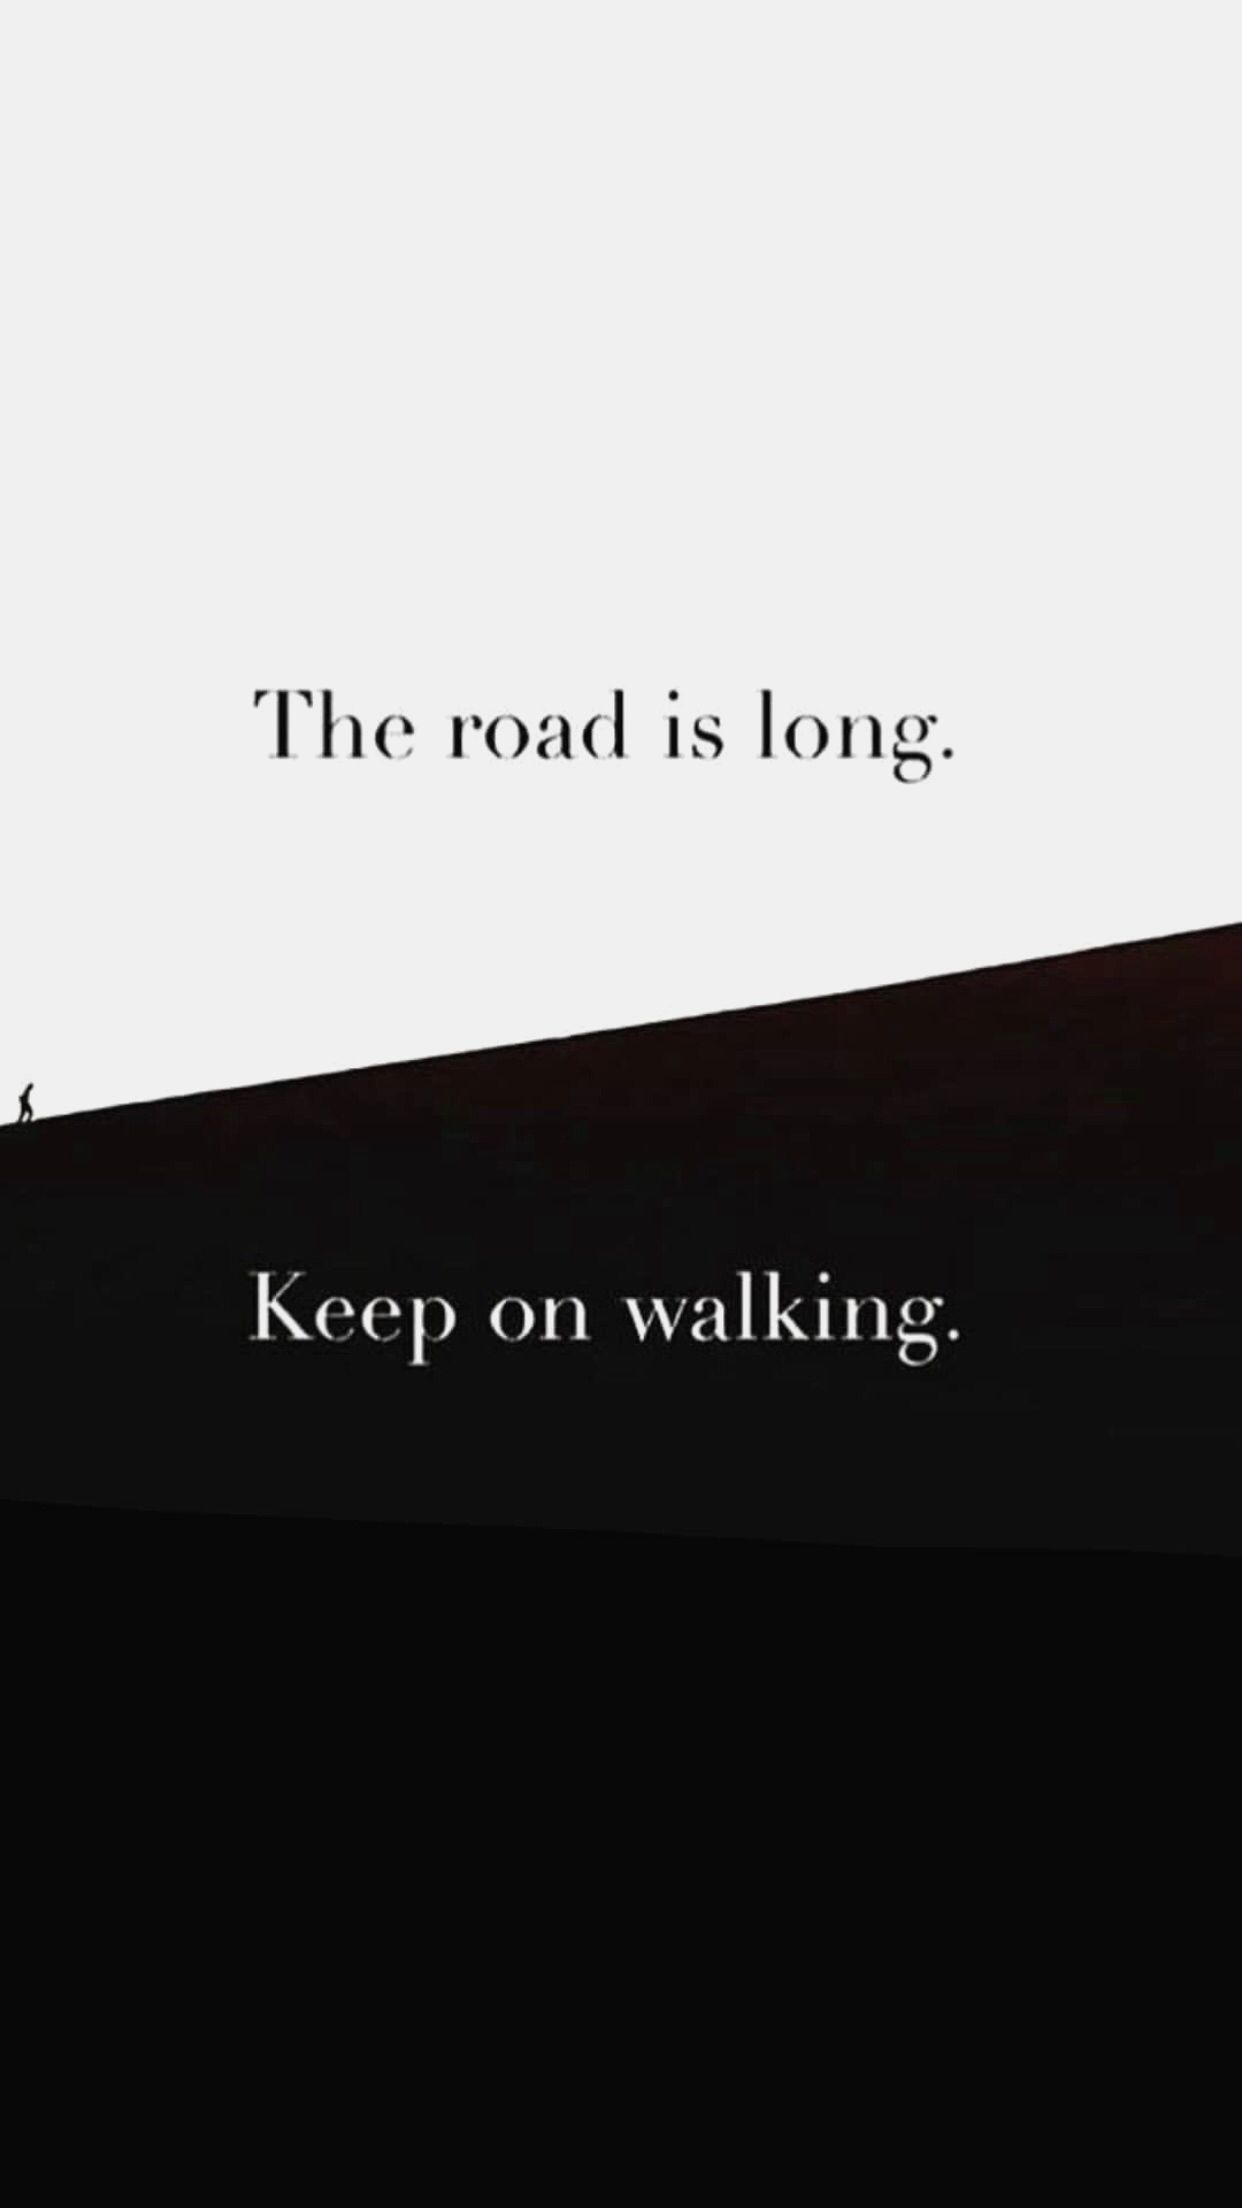 Aesthetic Picture Quotes Wallpapers Posted By John Cunningham